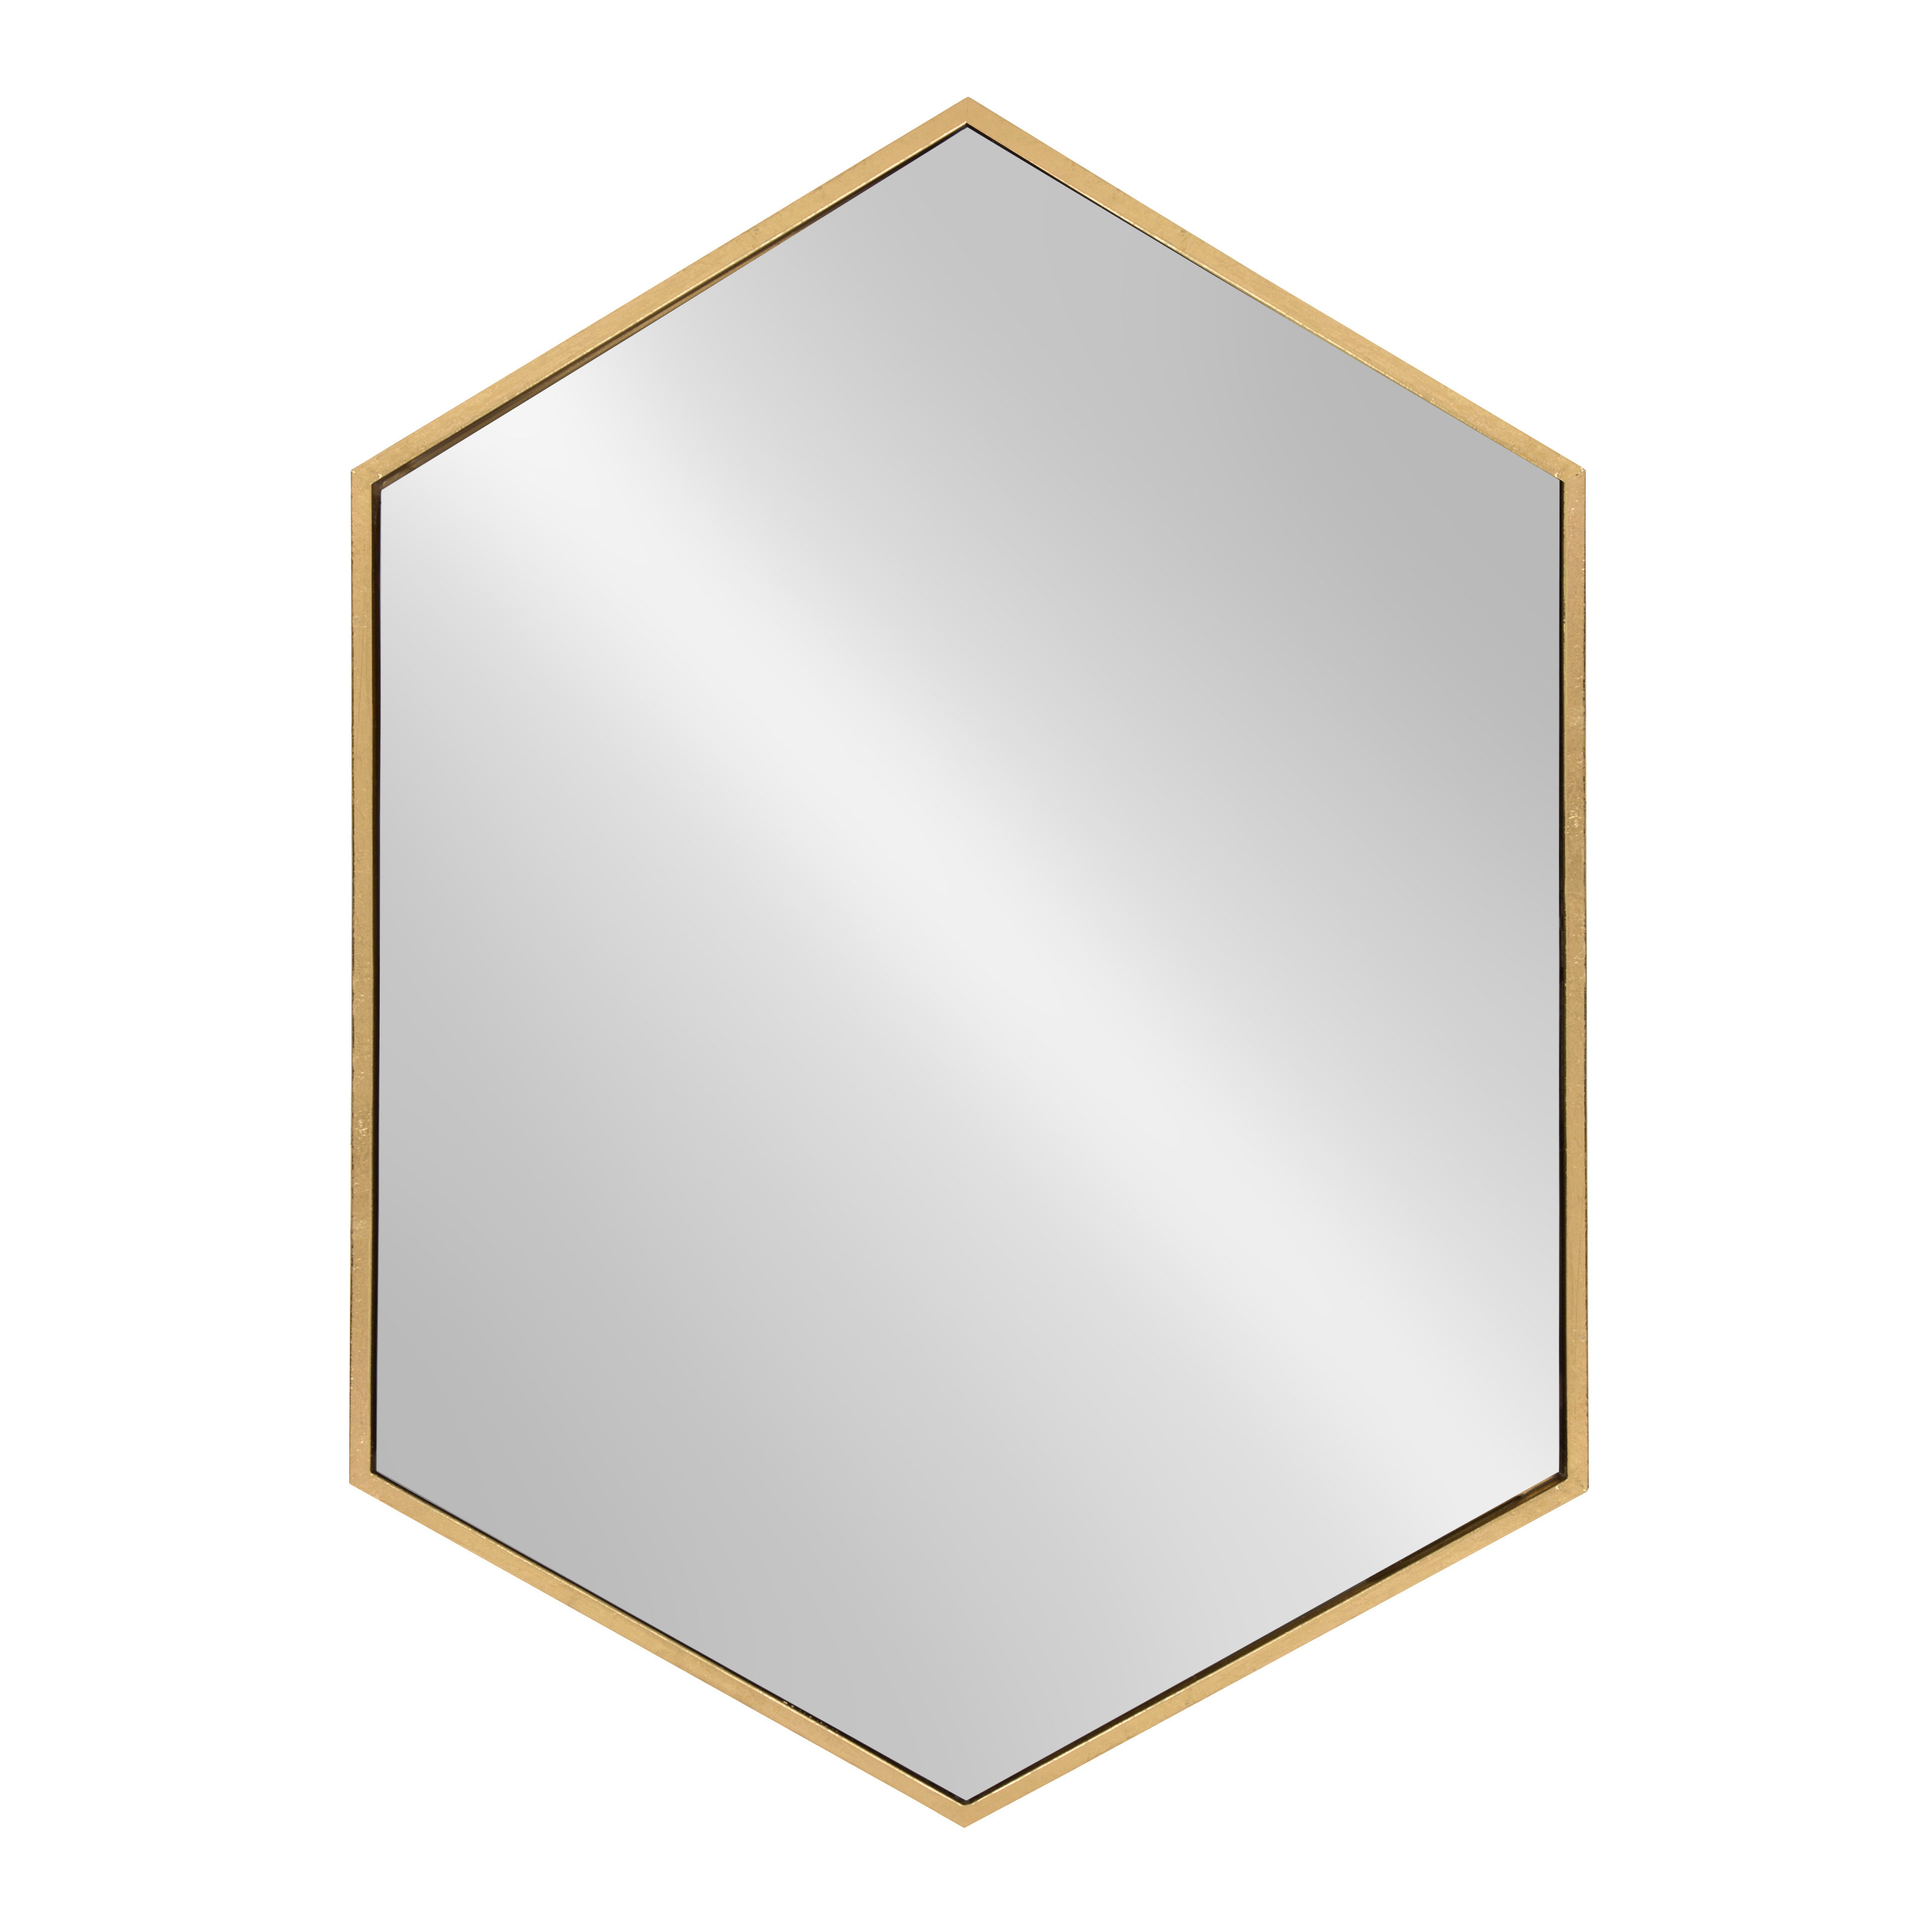 Hentz Hexagon Wall Mirror With Most Up To Date Bem Decorative Wall Mirrors (Gallery 17 of 20)